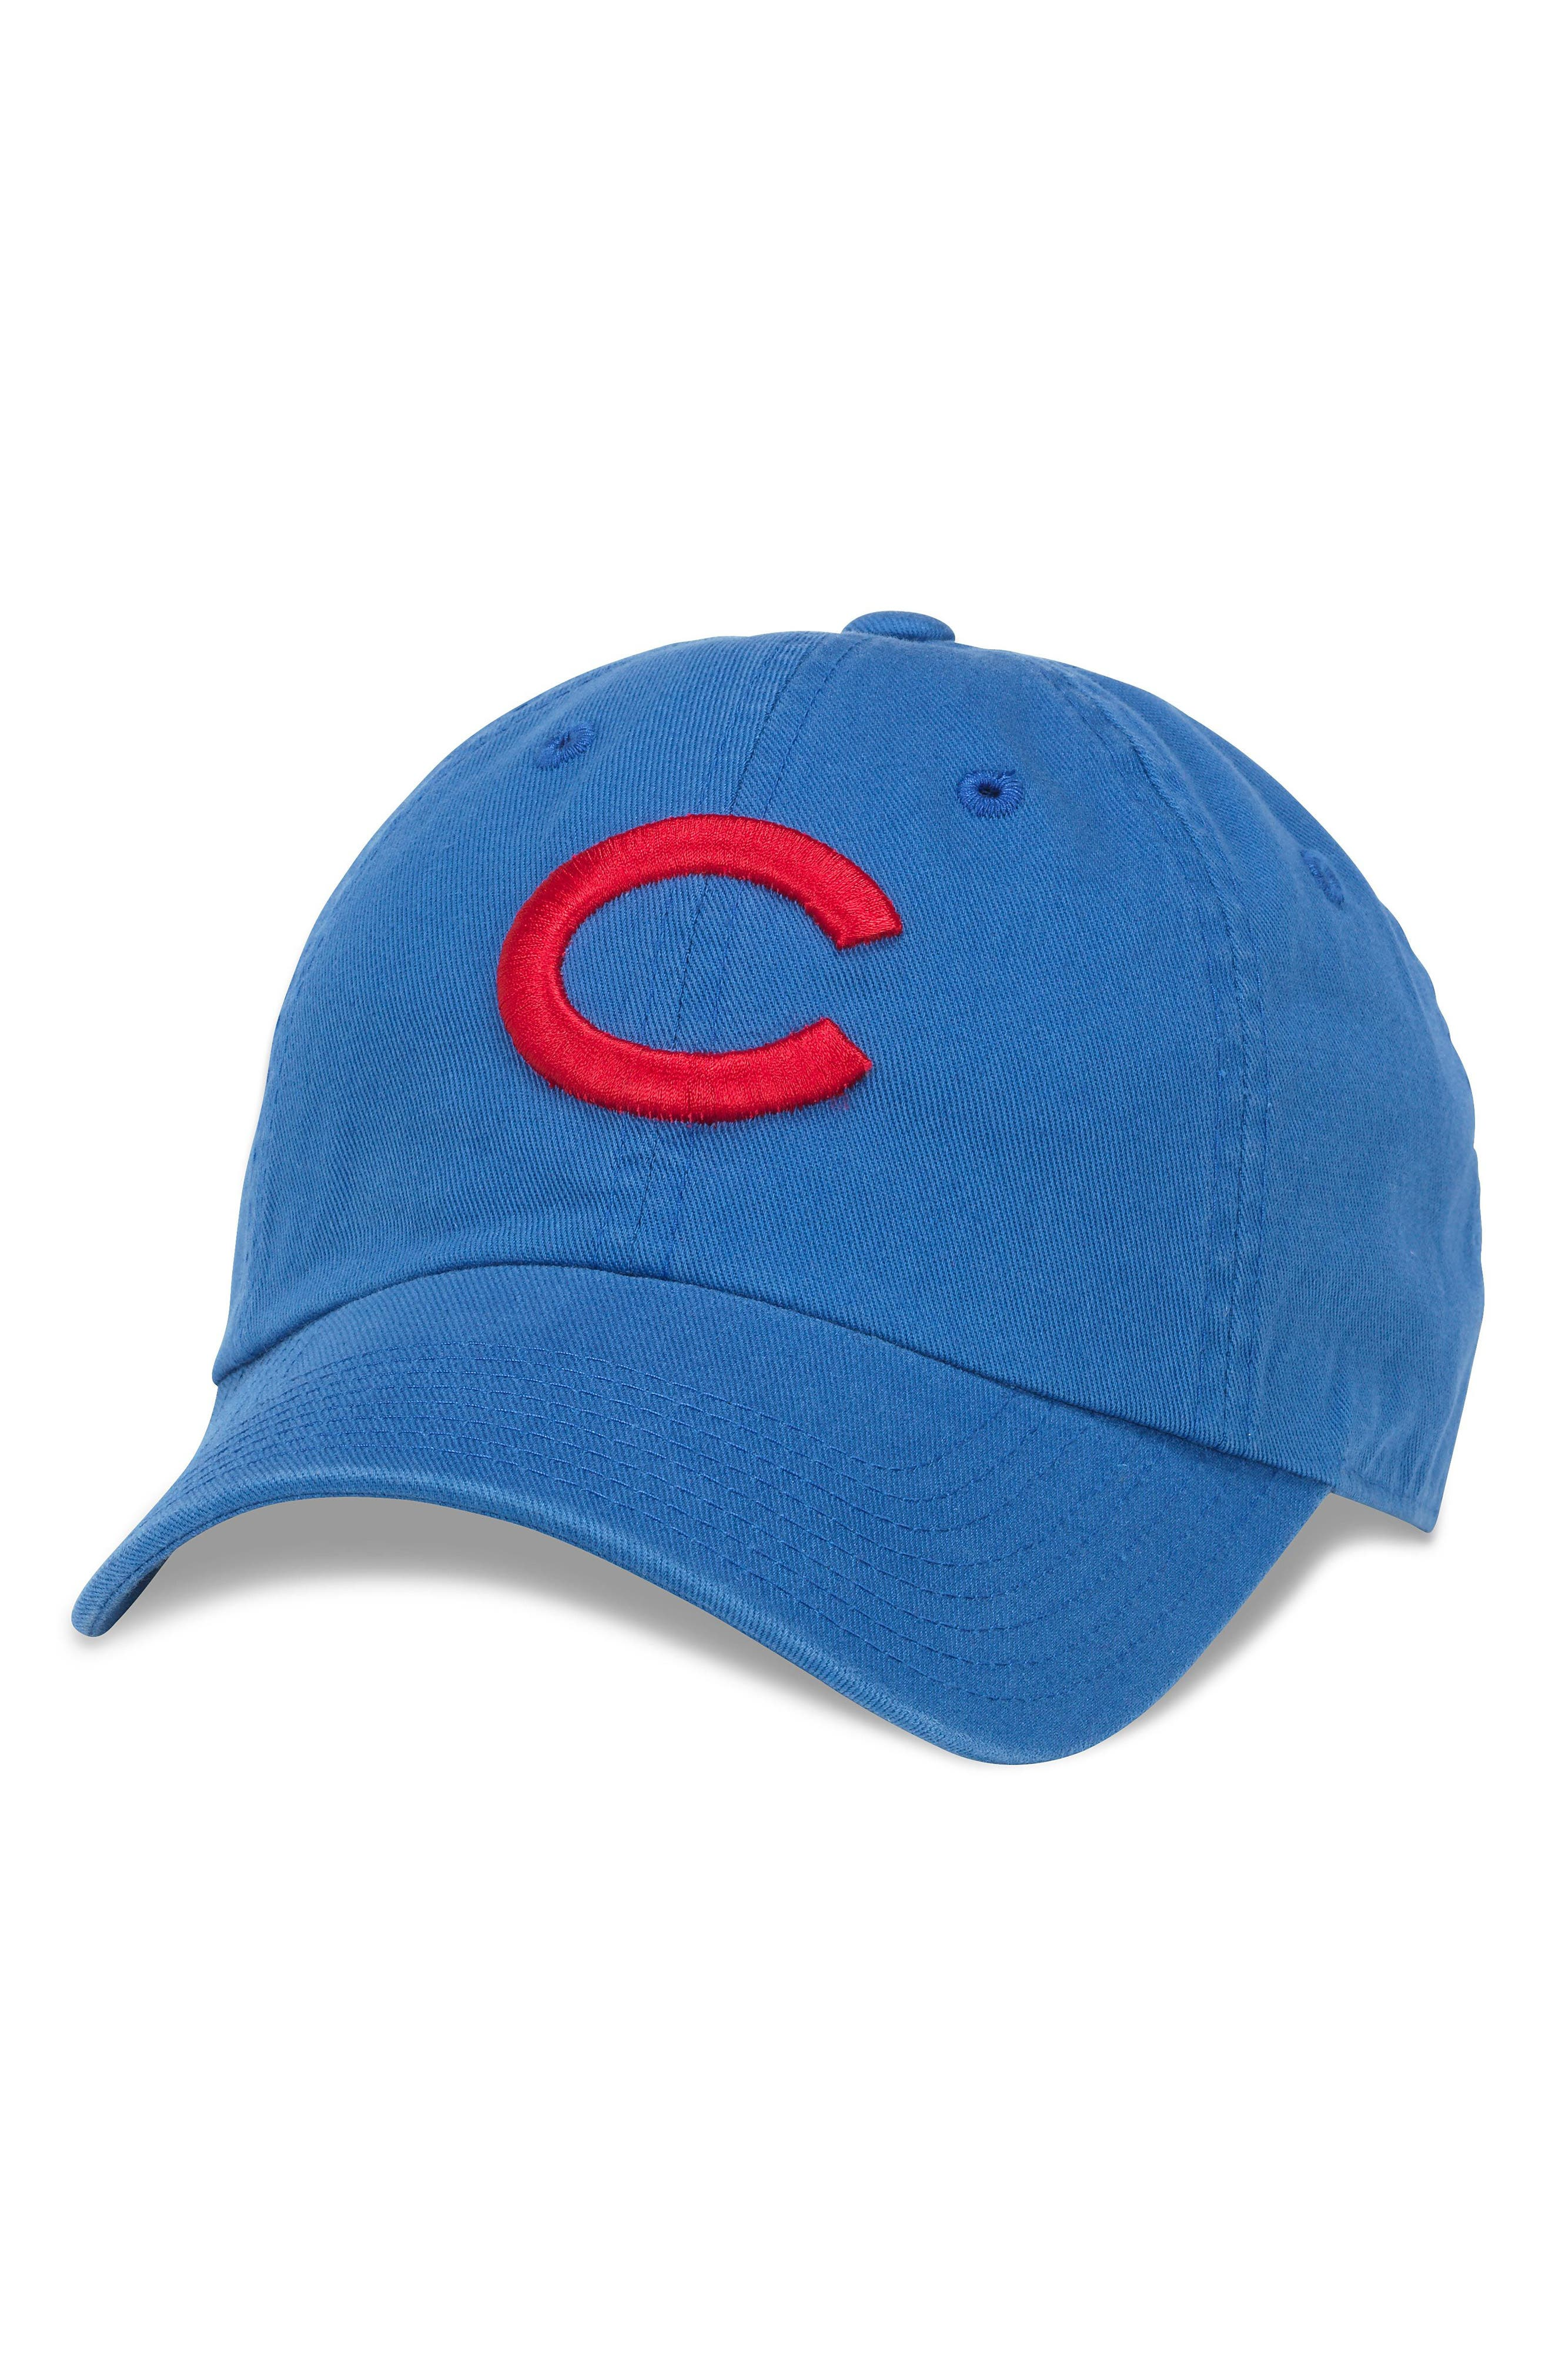 1938 Chicago Cubs Southpaw Ball Cap,                         Main,                         color, 450